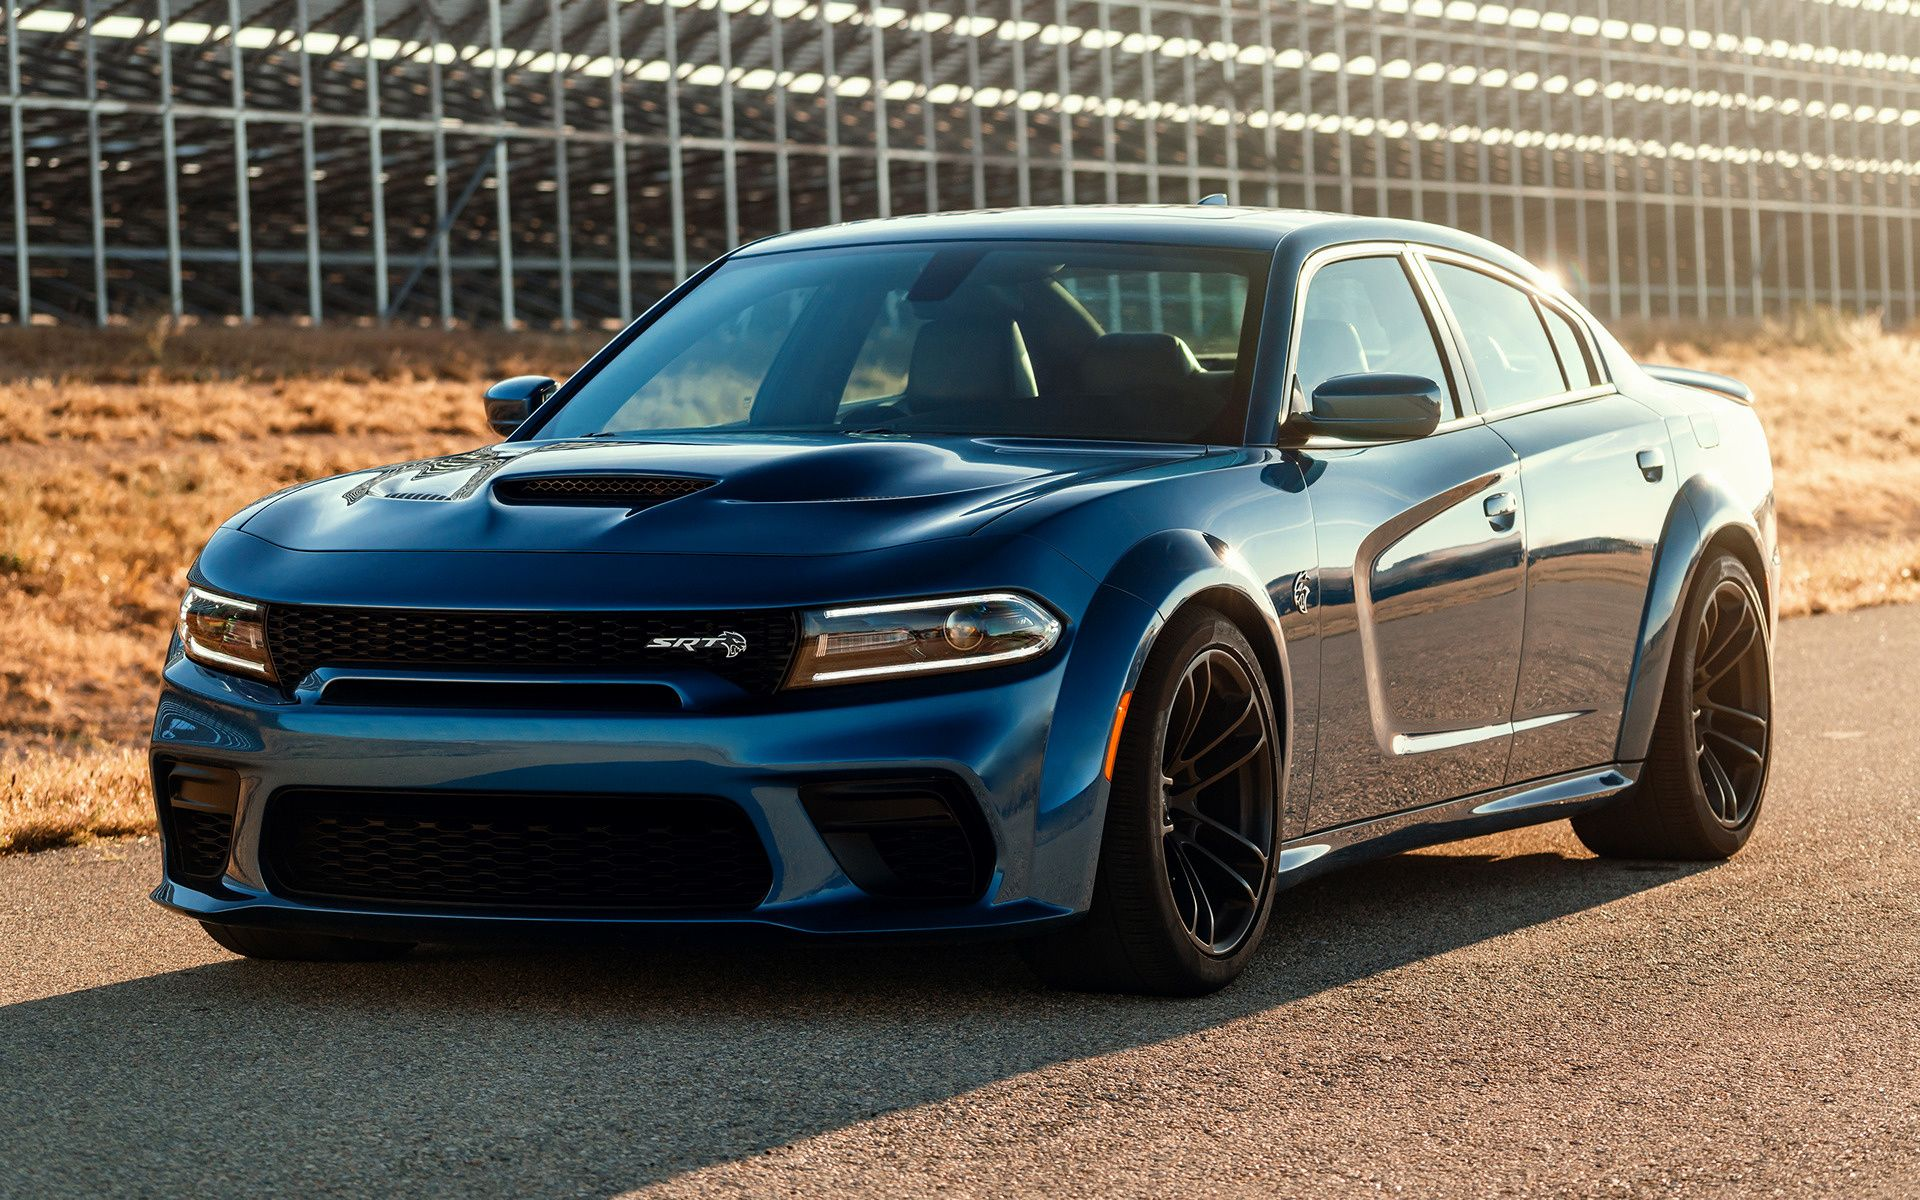 Dodge Charger SRT Wallpapers - Top Free